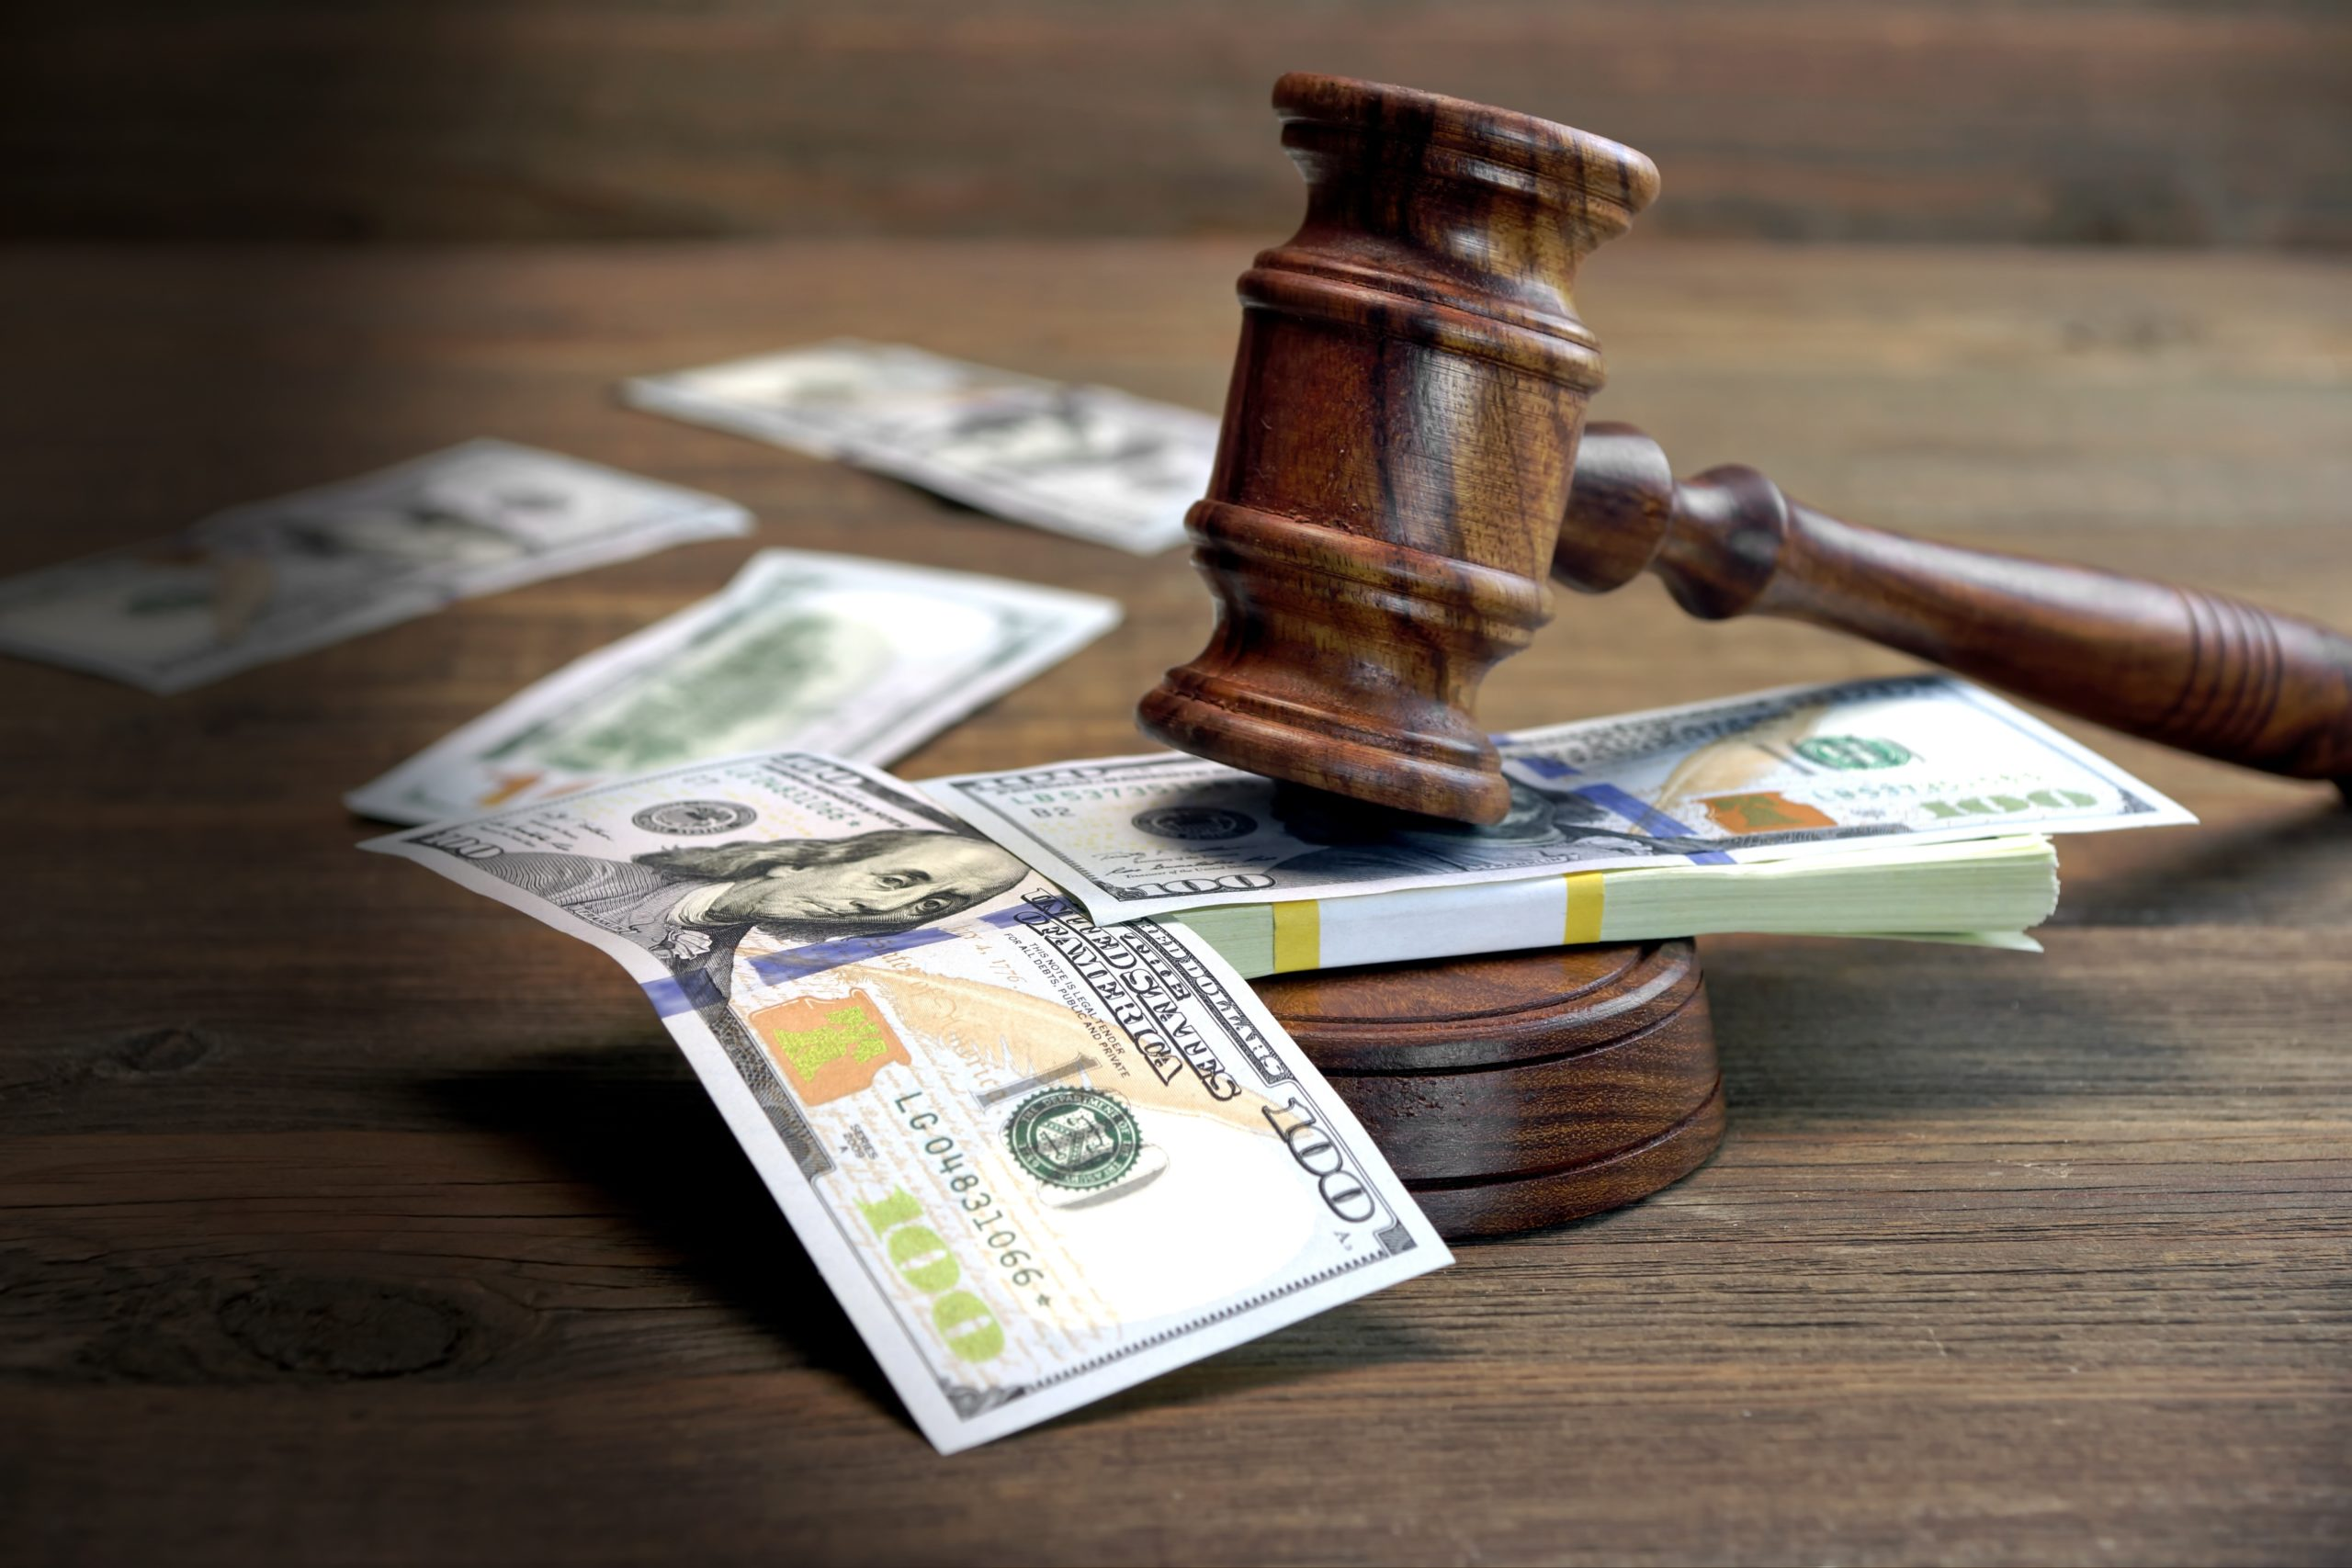 What are typical probate lawyer fees in Florida?